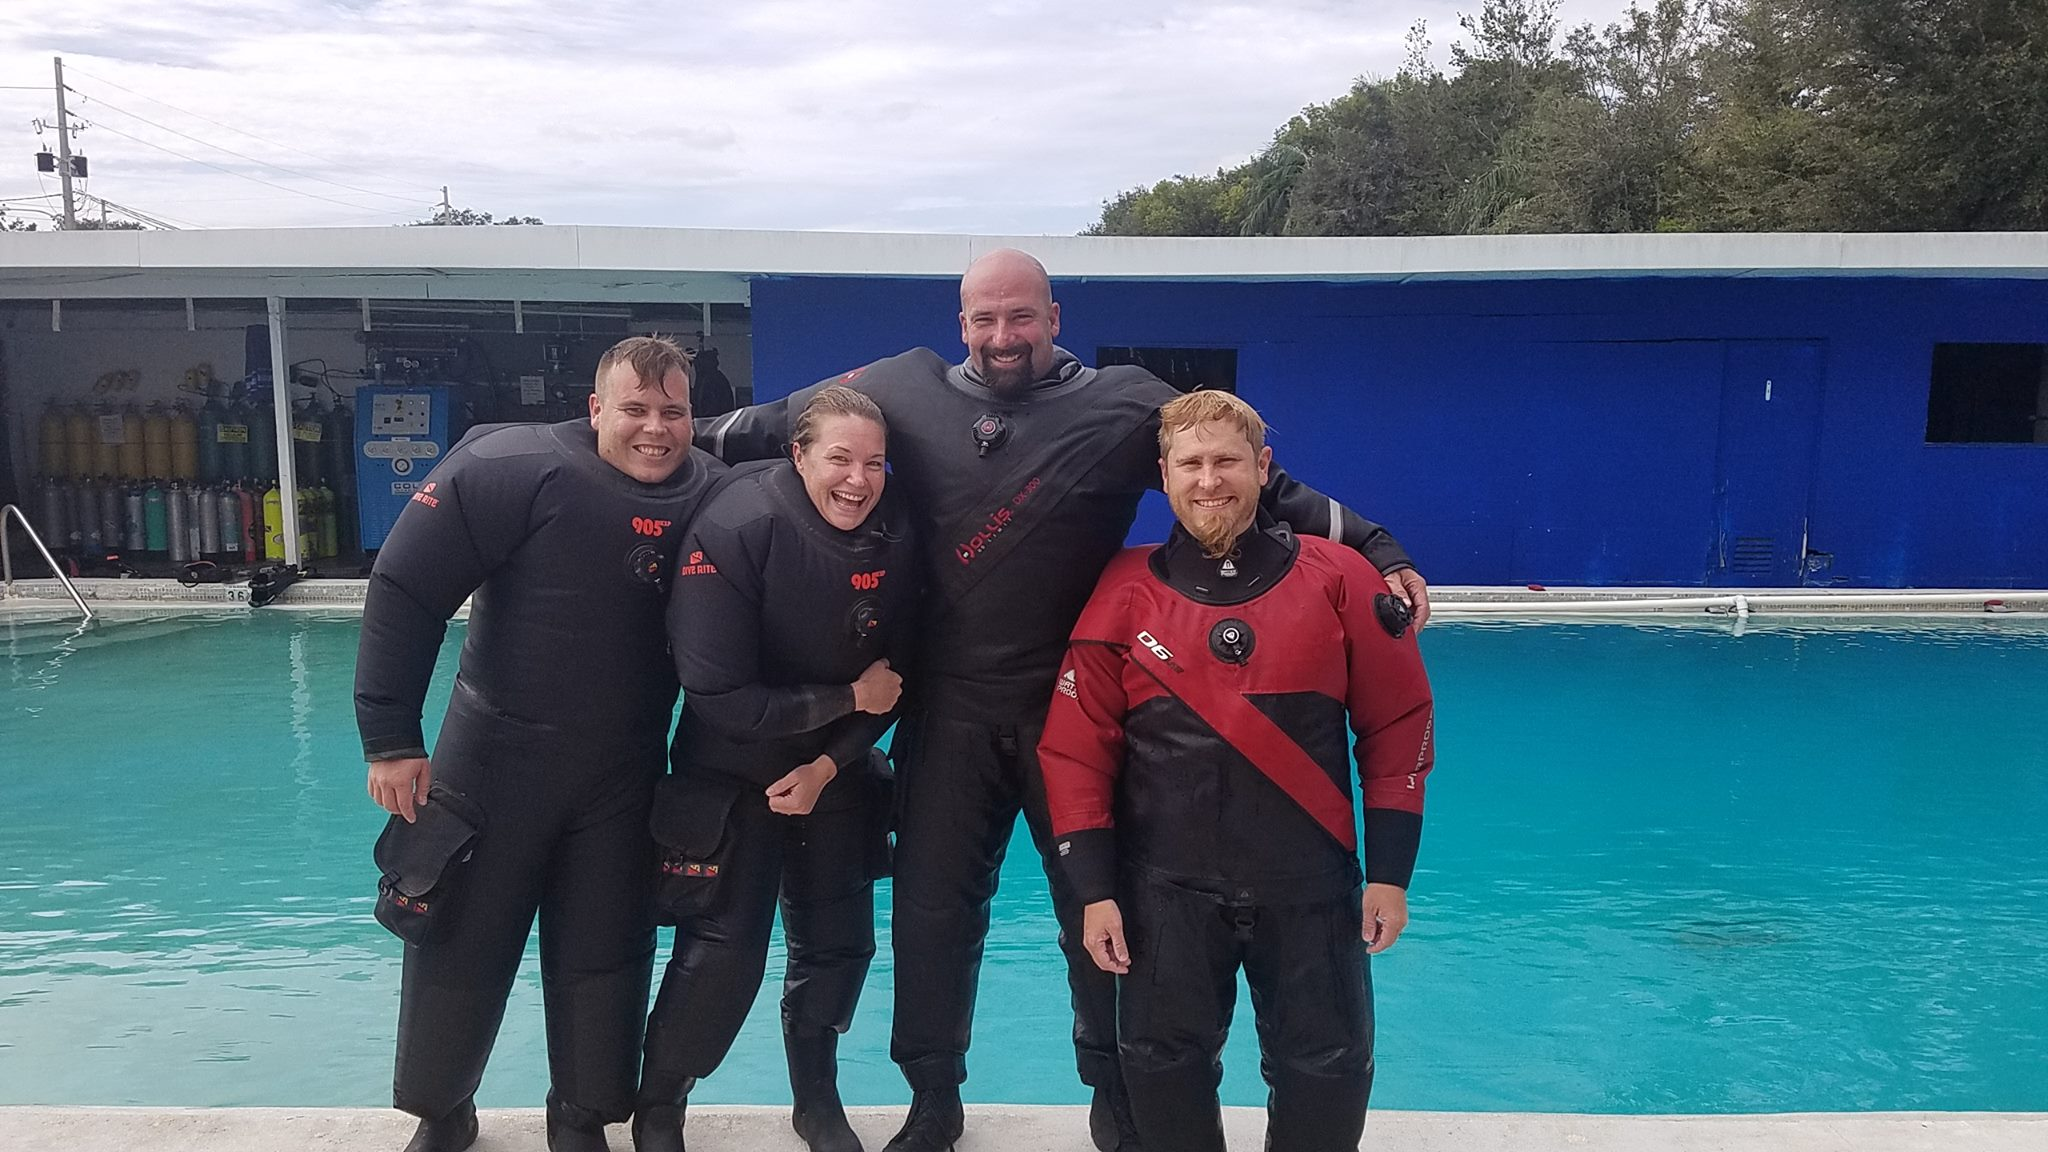 Dry Suit Diver - Learn how to control your bouyance and dive as a dry suit diver.